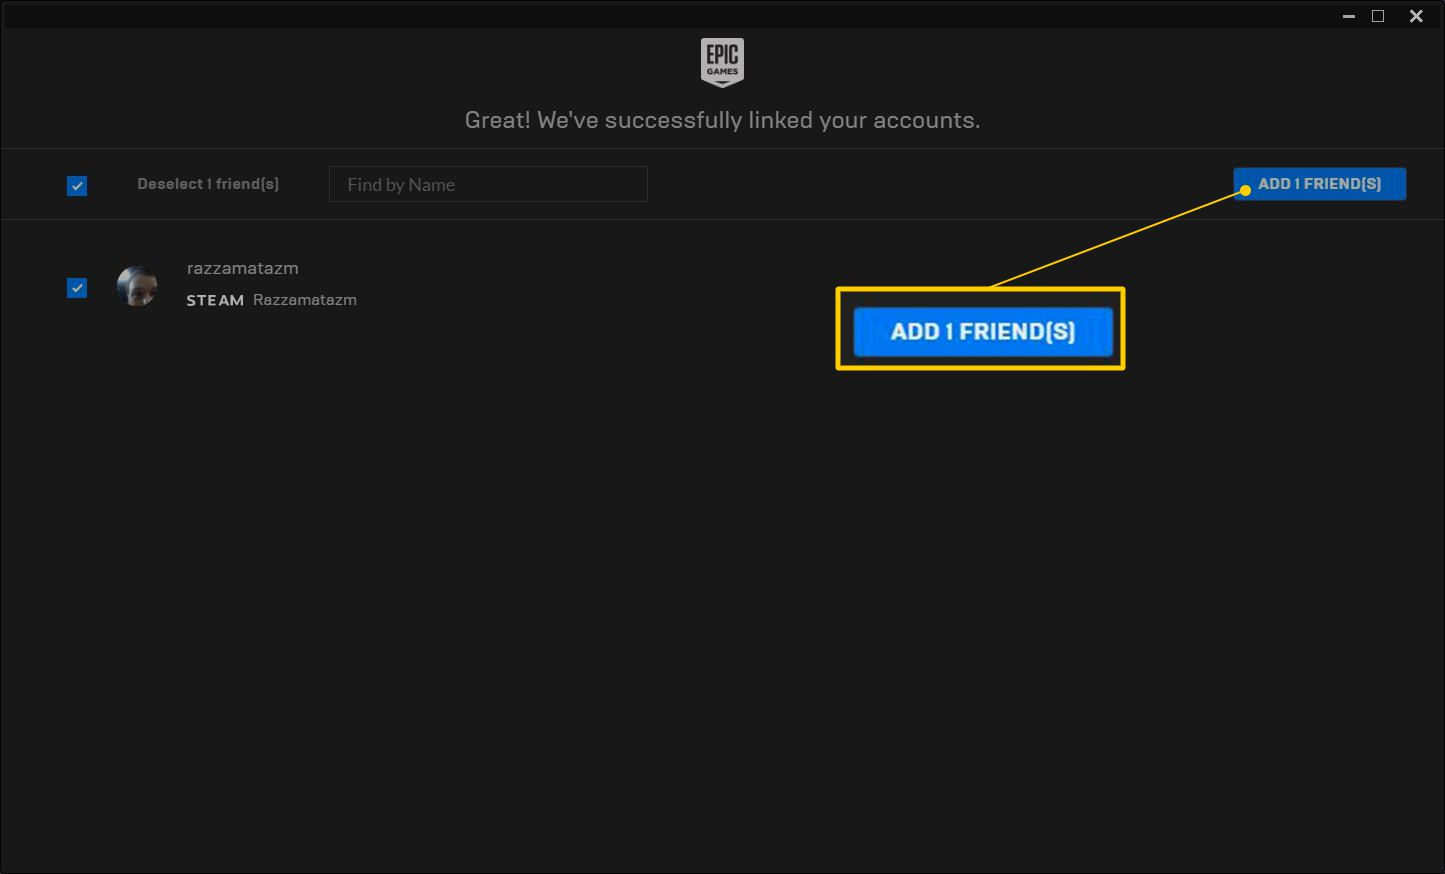 [GUIDE] How to Add Friends on Epic Games Account Easily